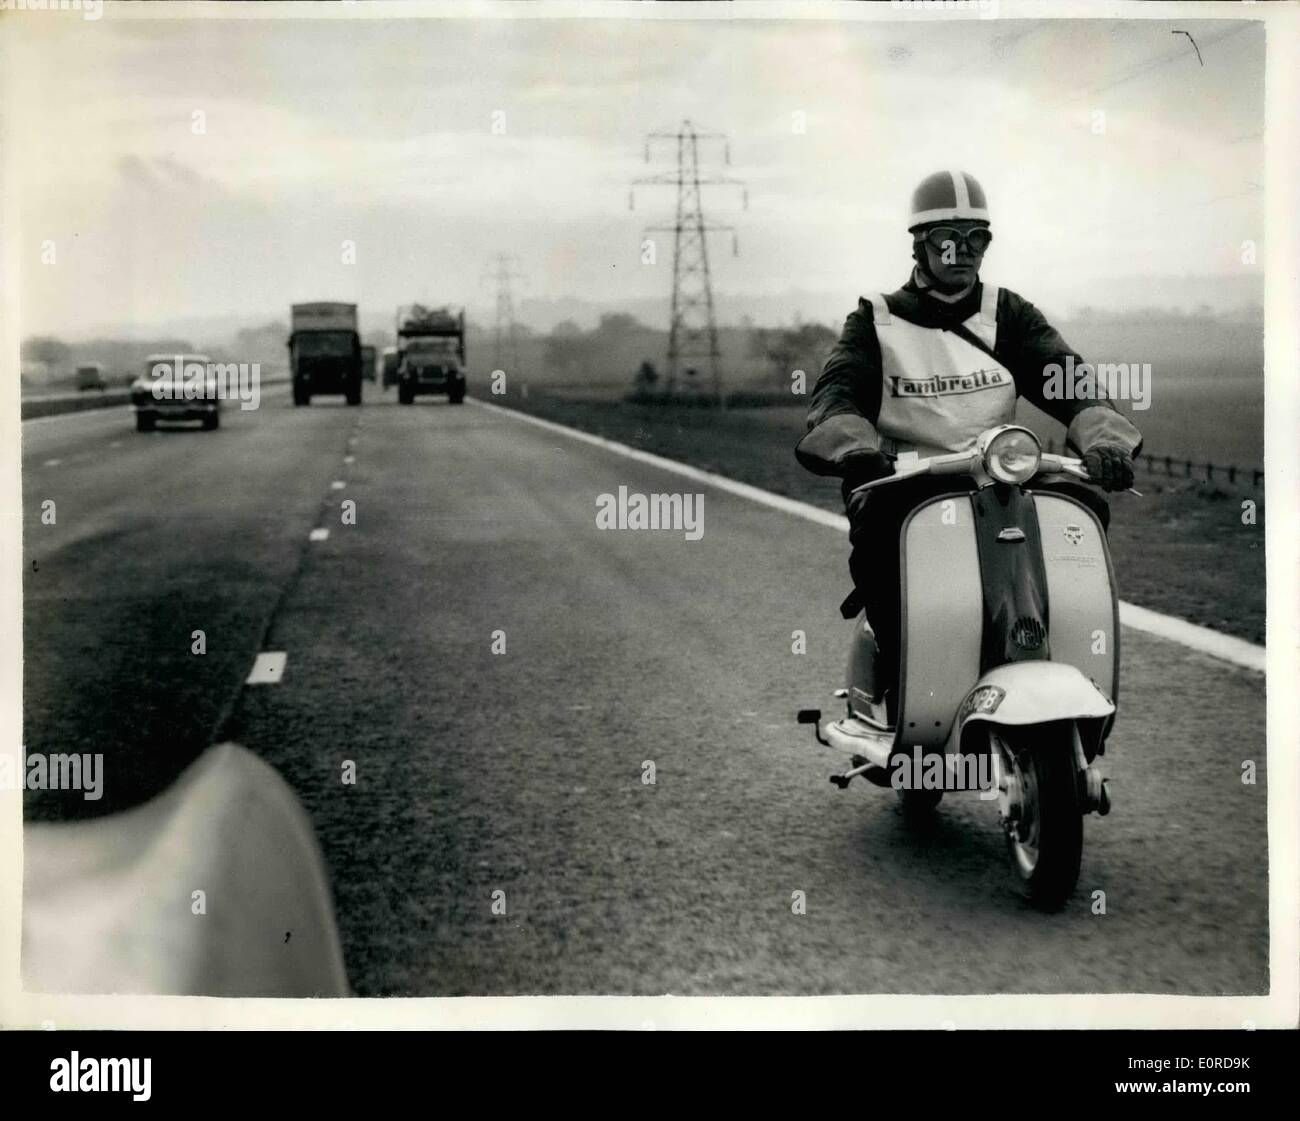 Feb. 02, 1959 - LAMBRETTA COVERS 142 MILES in 143 MINUTES ON THE NEW MOTORWAY,. BRIAN GIBBS, works rider for Lambretta, took a spare part to the Birmingham end of the new motorway opened today - the M.1 from Luton Spur, where the opening took place and returned after refuelling to the St. Albans, end of tie M.1, H. covered the total of 142 miles in 143 minutes,, KEYSTONE PHOTO SHOWS, BRIAN GIBES seen riding the Lambretta to Birmingham, on the '' today, - Stock Image